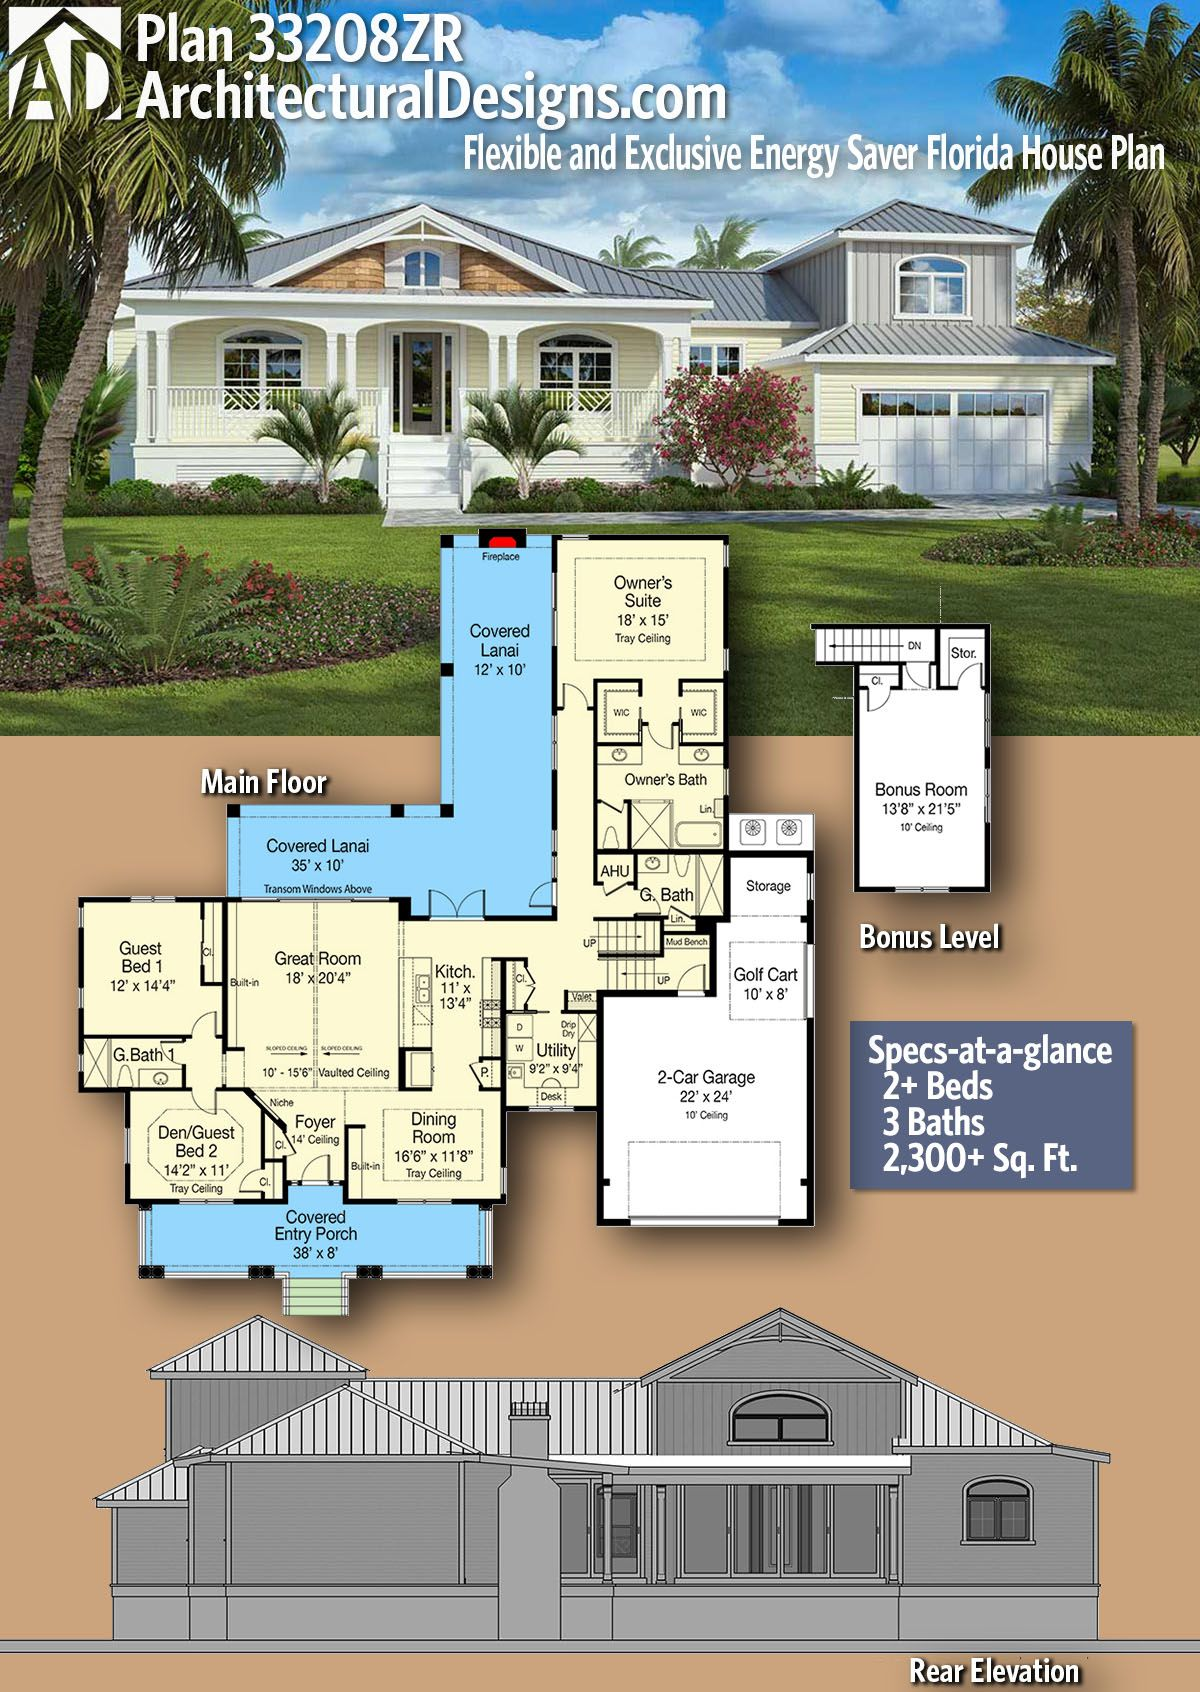 Plan 33208zr Flexible And Exclusive Energy Saver Florida House Plan Florida House Plans House Plans How To Plan